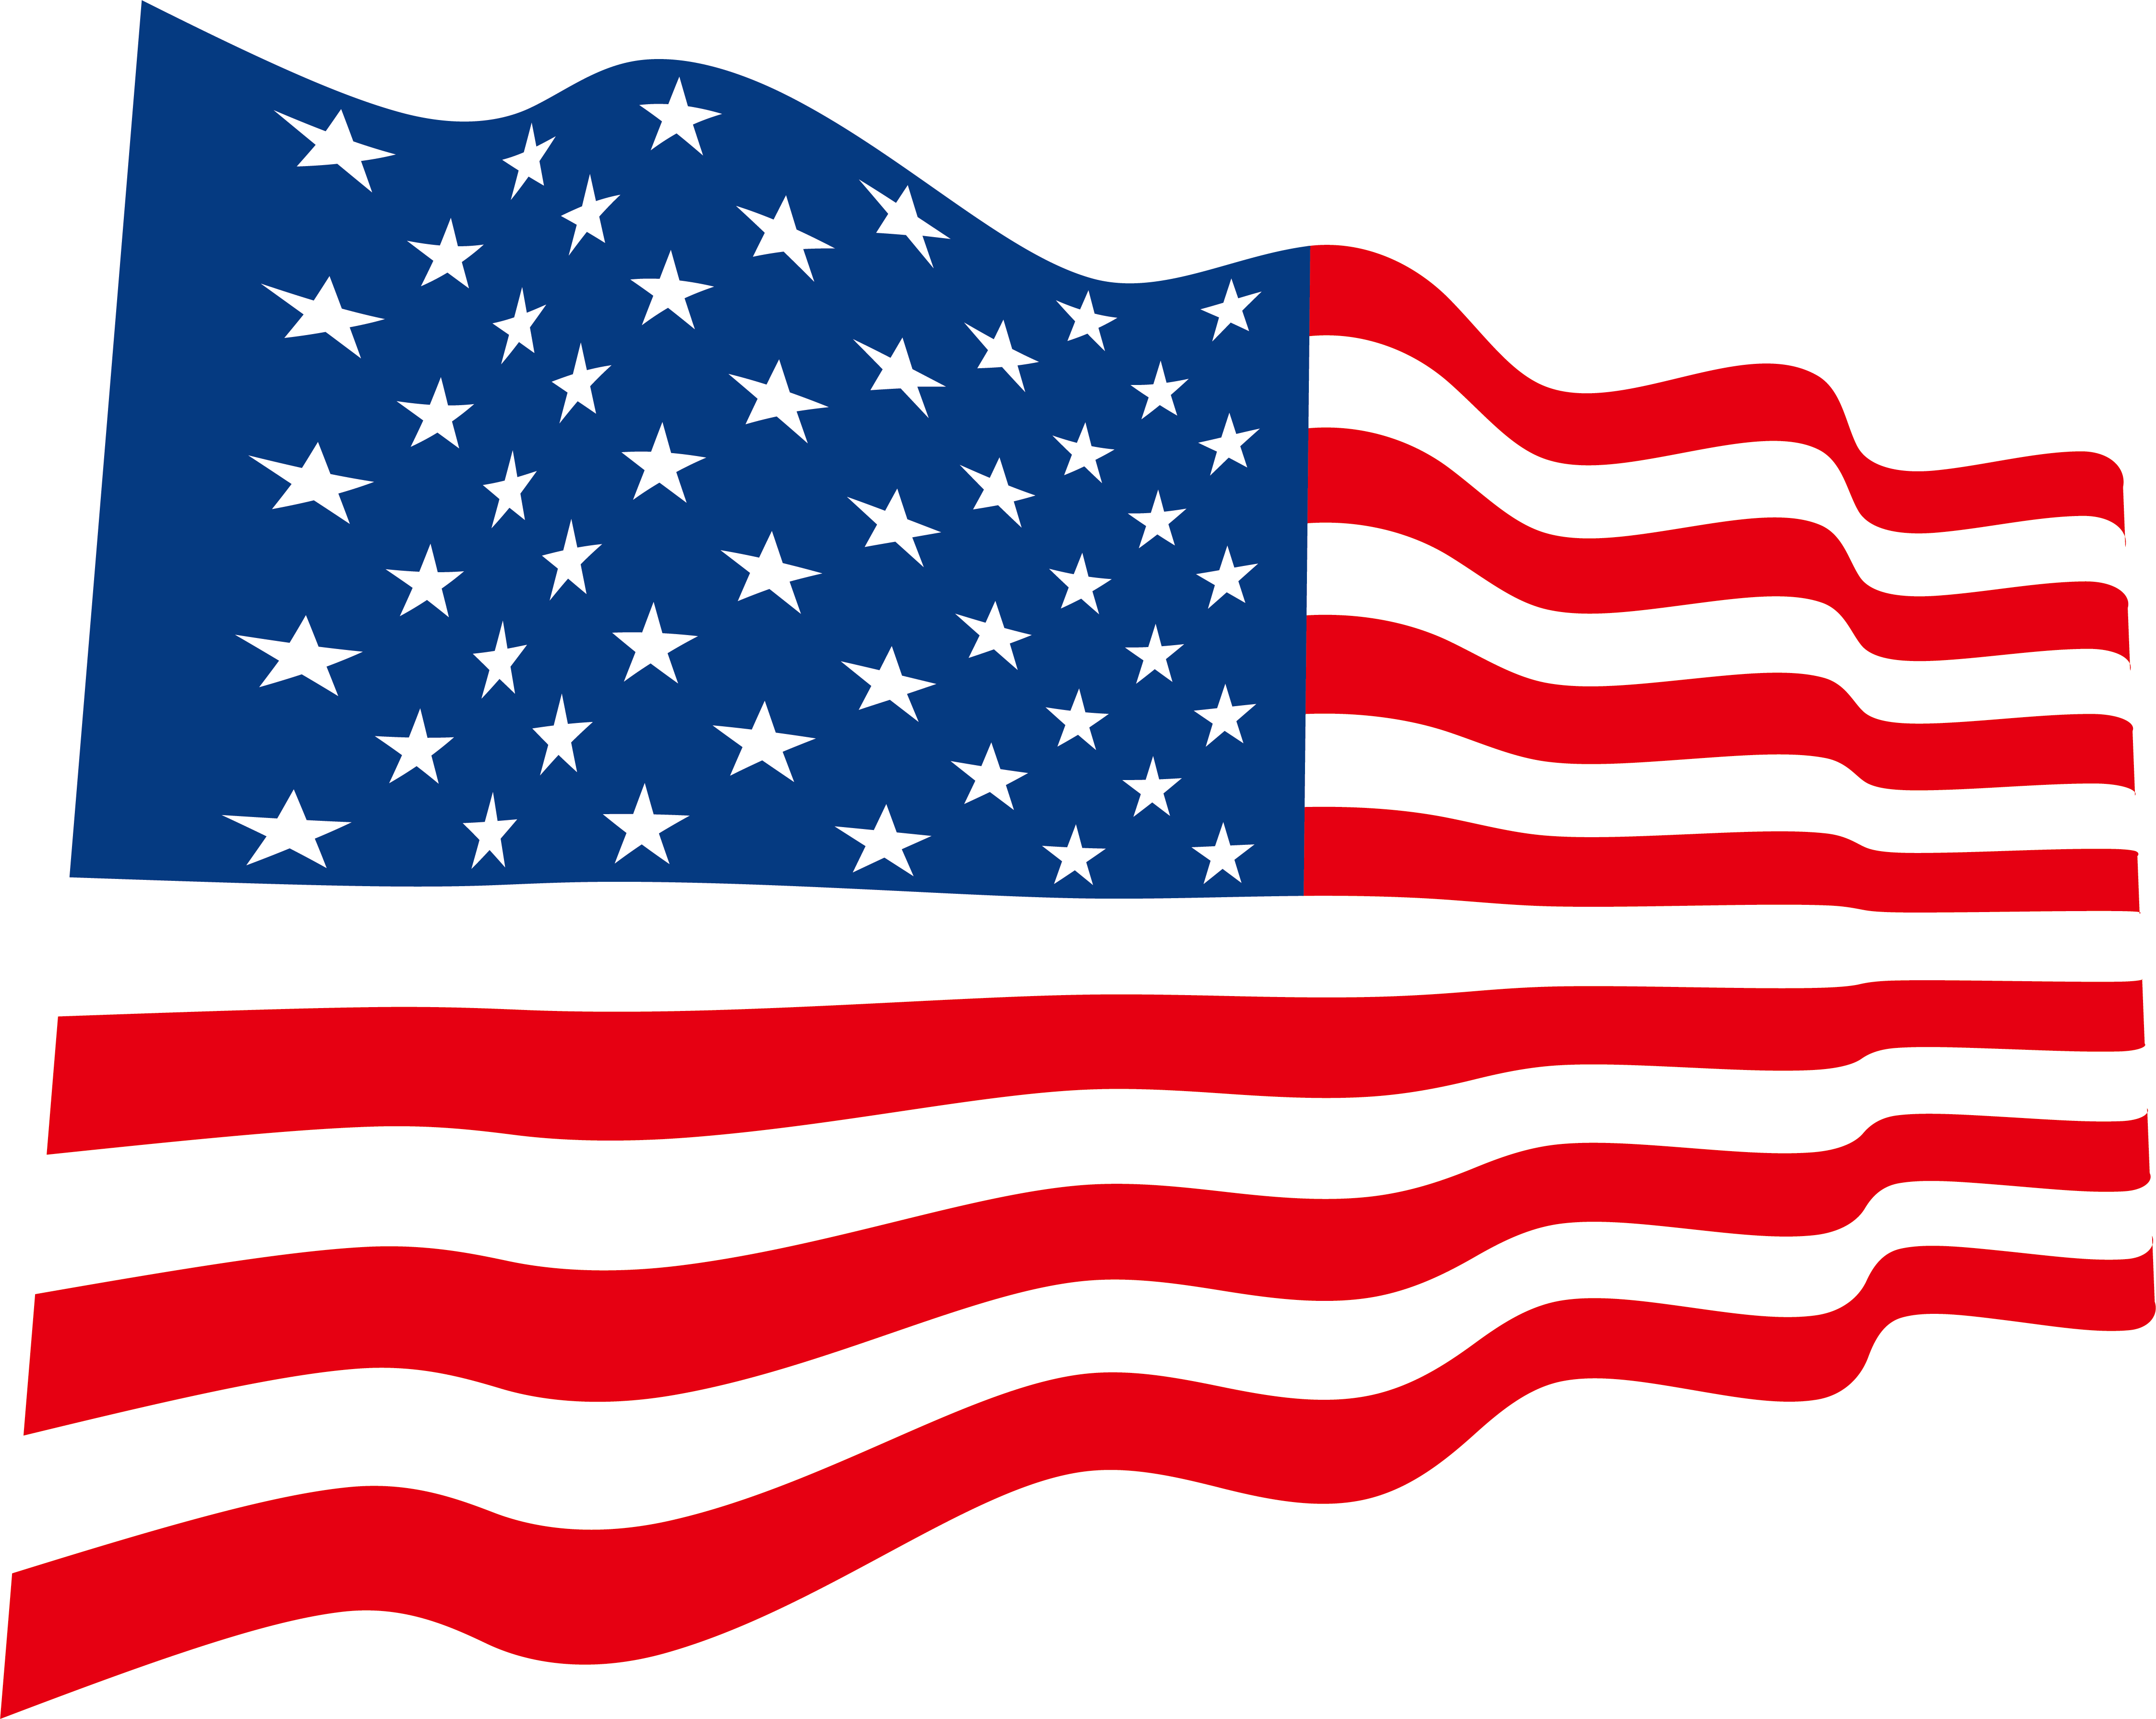 American flag design png. Of the united states